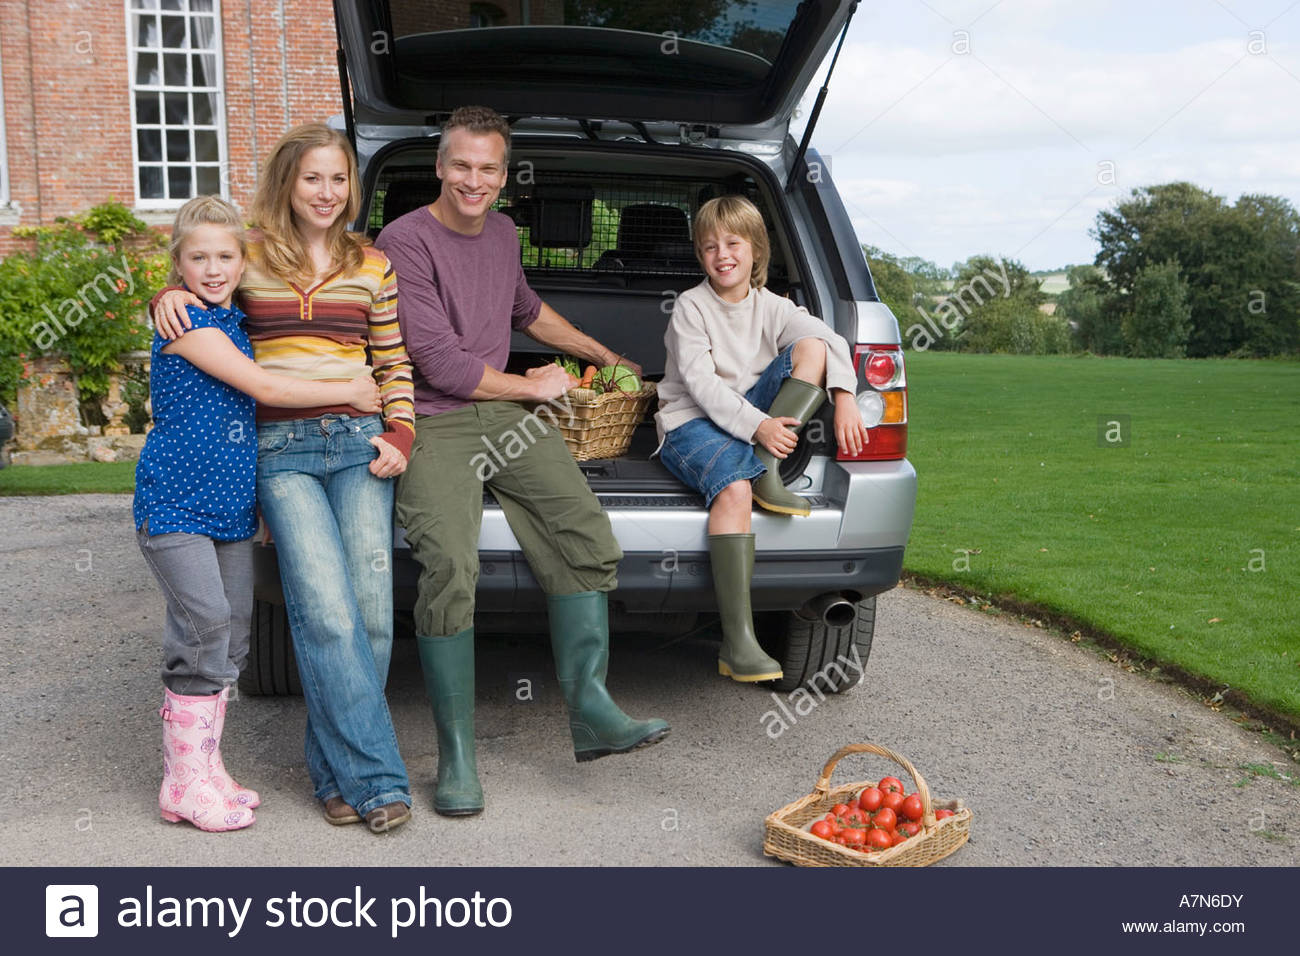 Family posing beside car boot with basket of vegetables in driveway smiling portrait - Stock Image